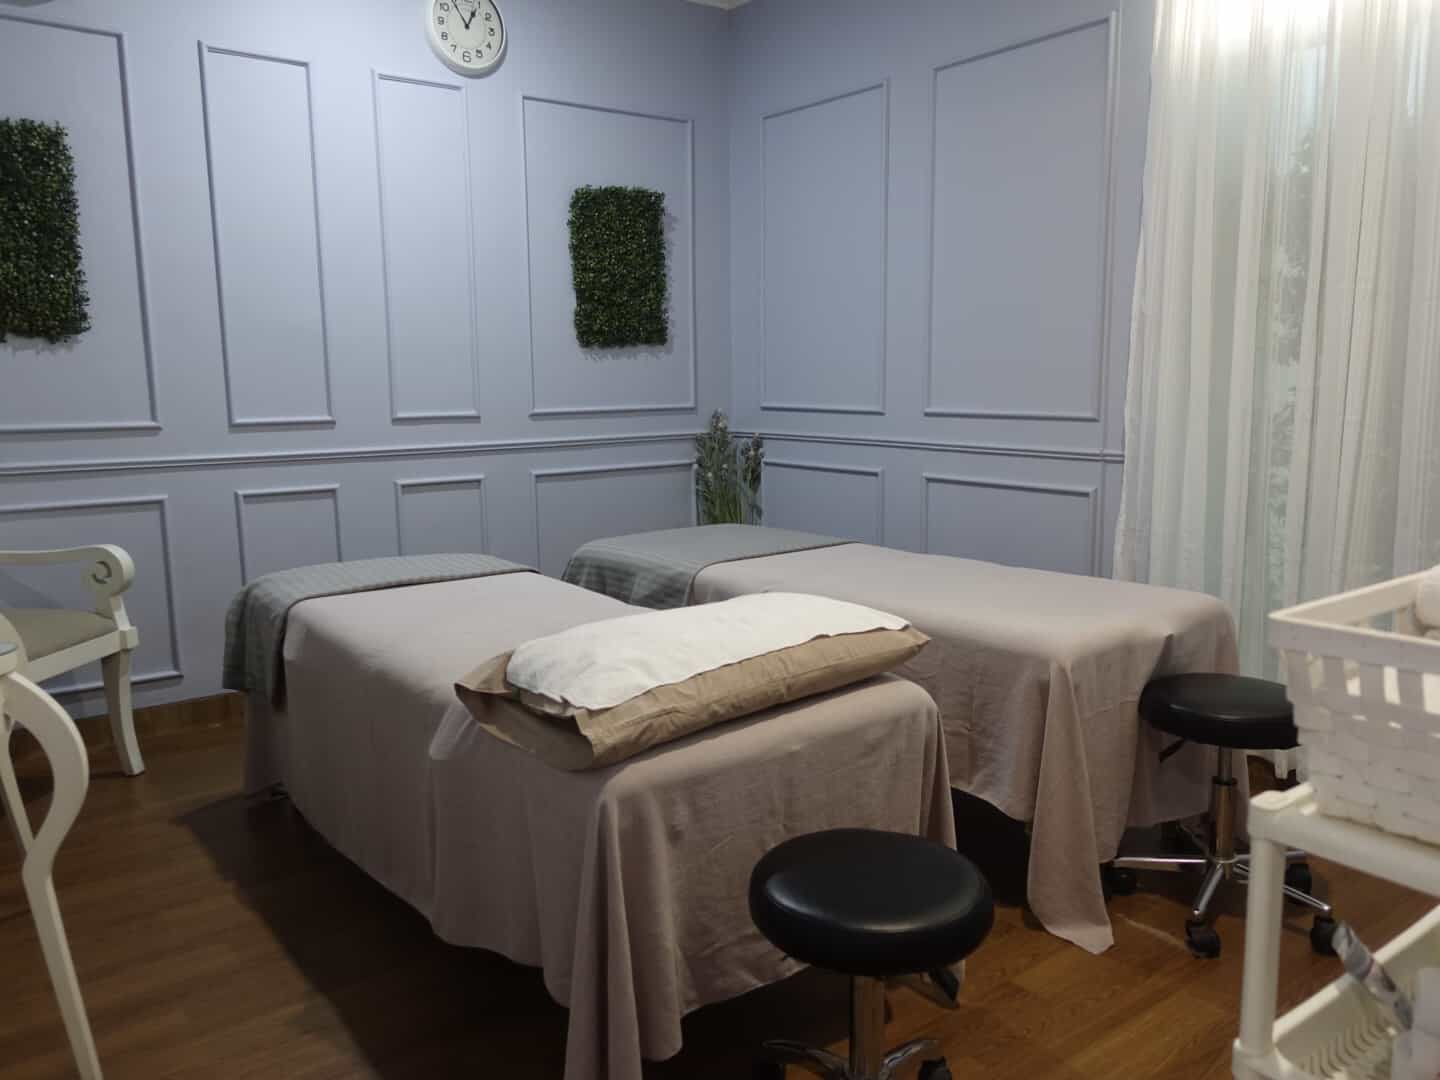 pavilion beauty salon jakarta cempaka putih travelbeib review 2018 waxing room